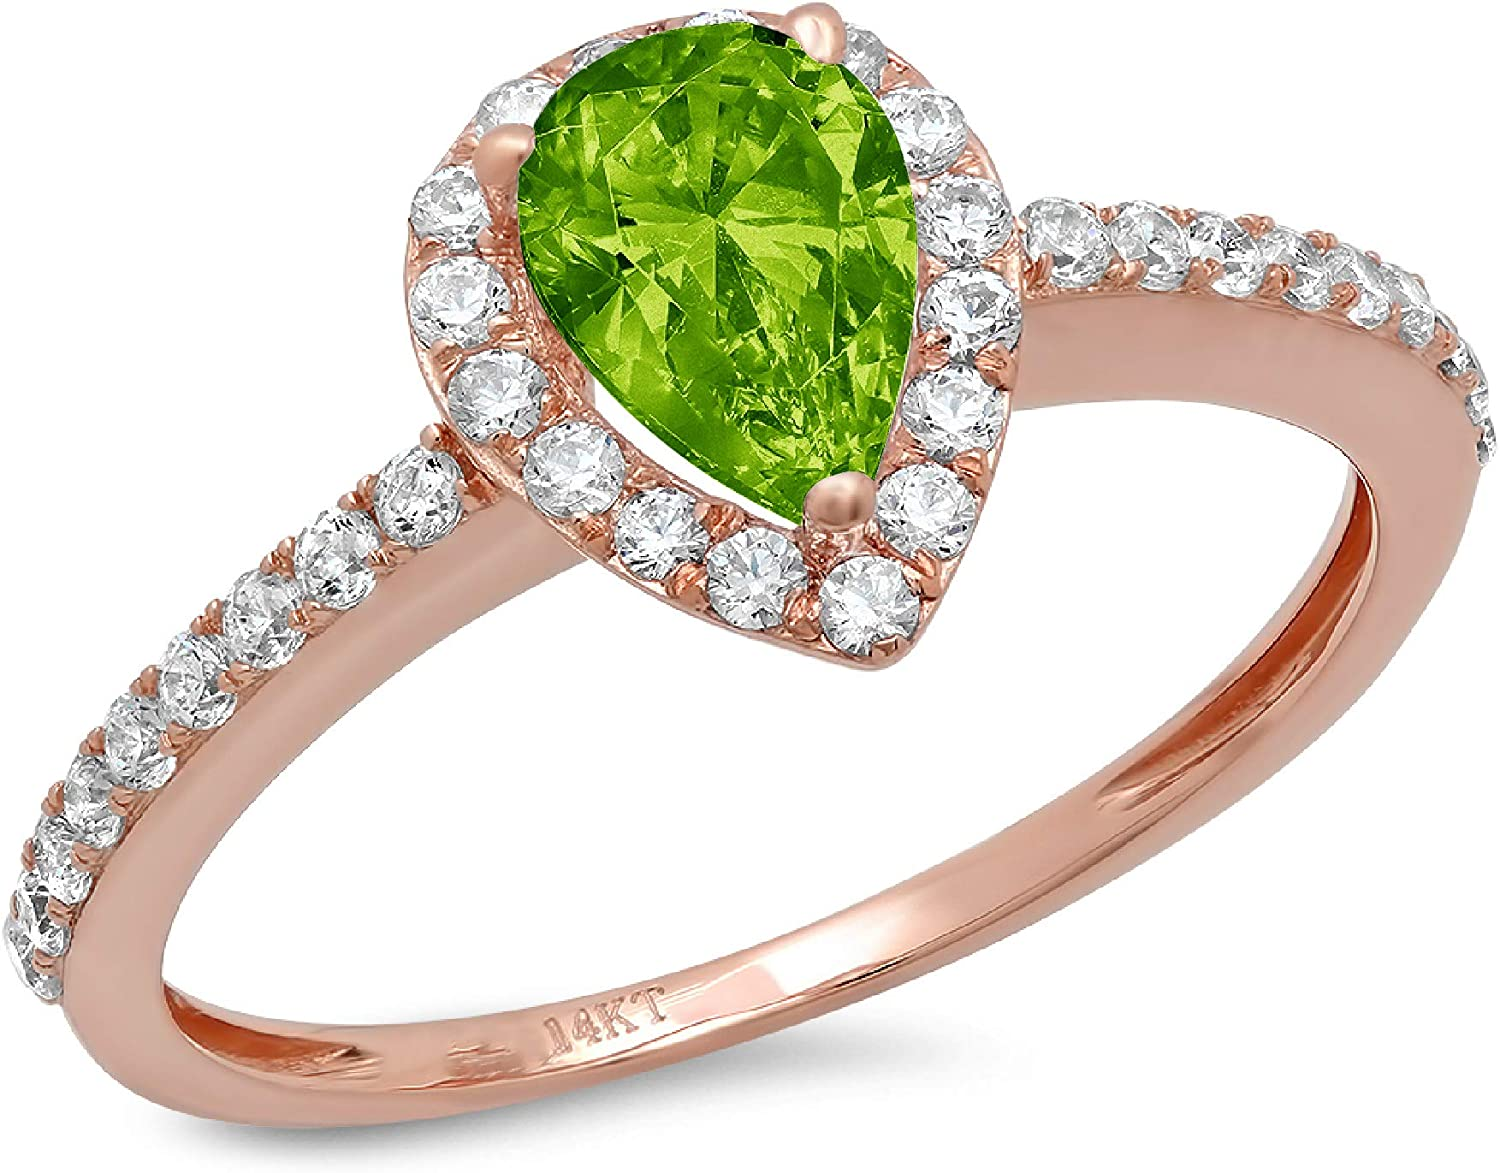 1.19ct Brilliant Pear Cut Solitaire with accent Flawless Genuine Natural Pure Green Peridot Gemstone VVS1 Designer Modern Statement Ring Solid 14k Rose Pink Gold